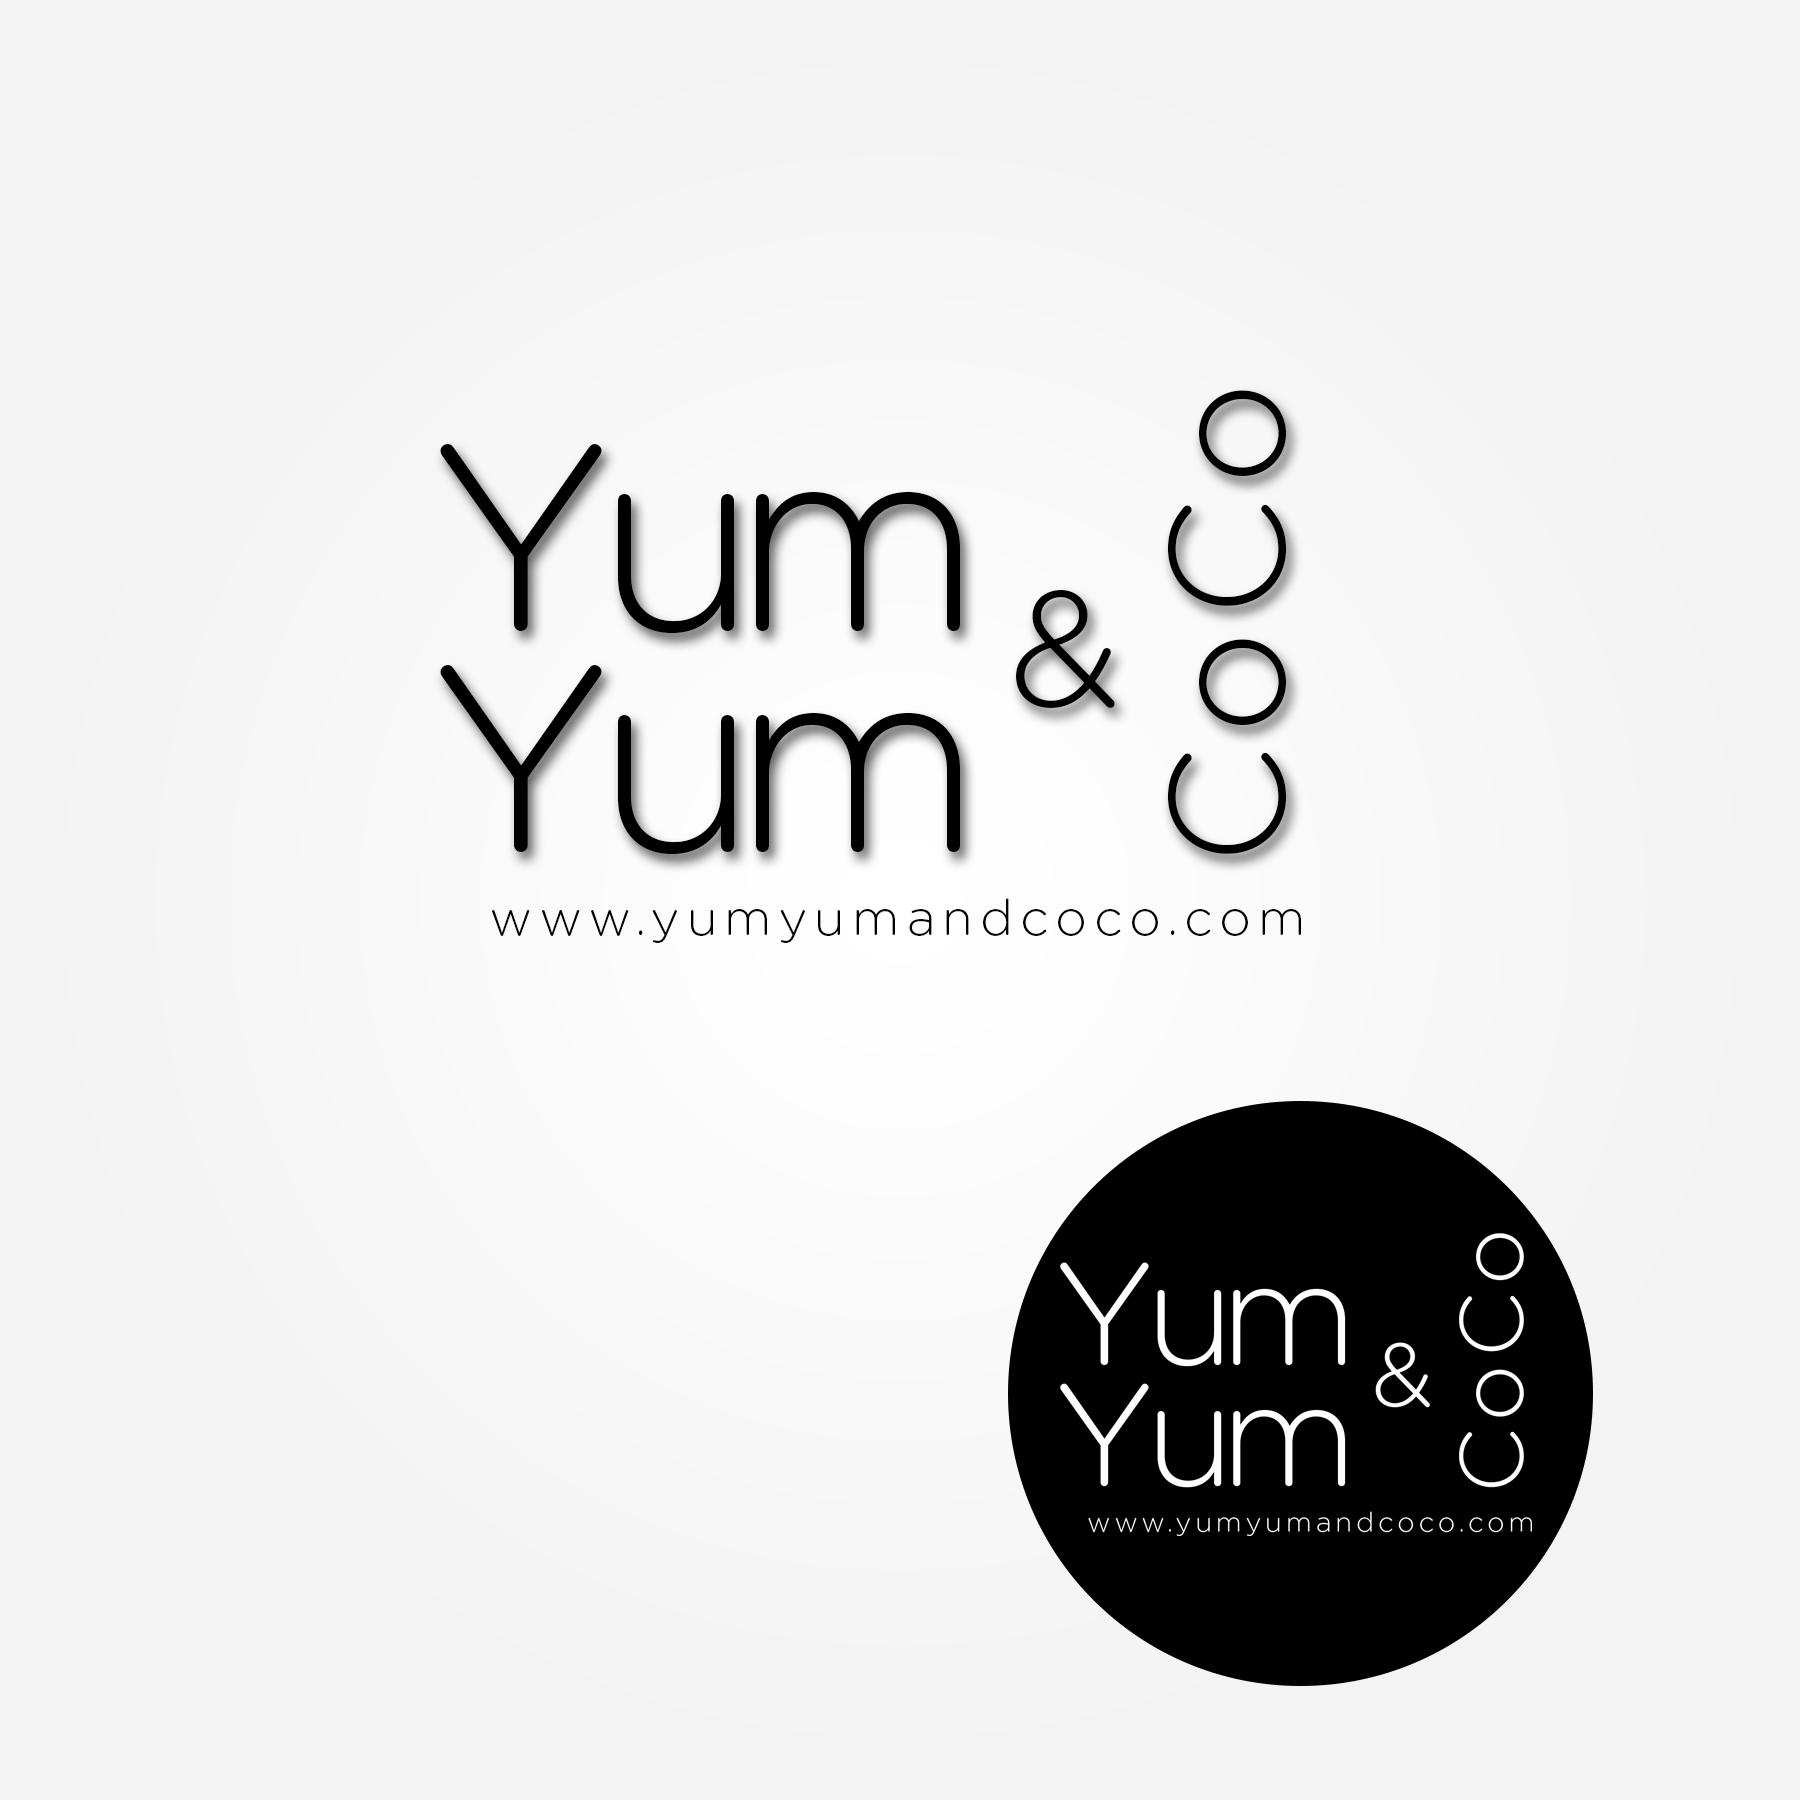 Logo Design by Lemuel Arvin Tanzo - Entry No. 147 in the Logo Design Contest Logo Design for YumYum & CoCo.